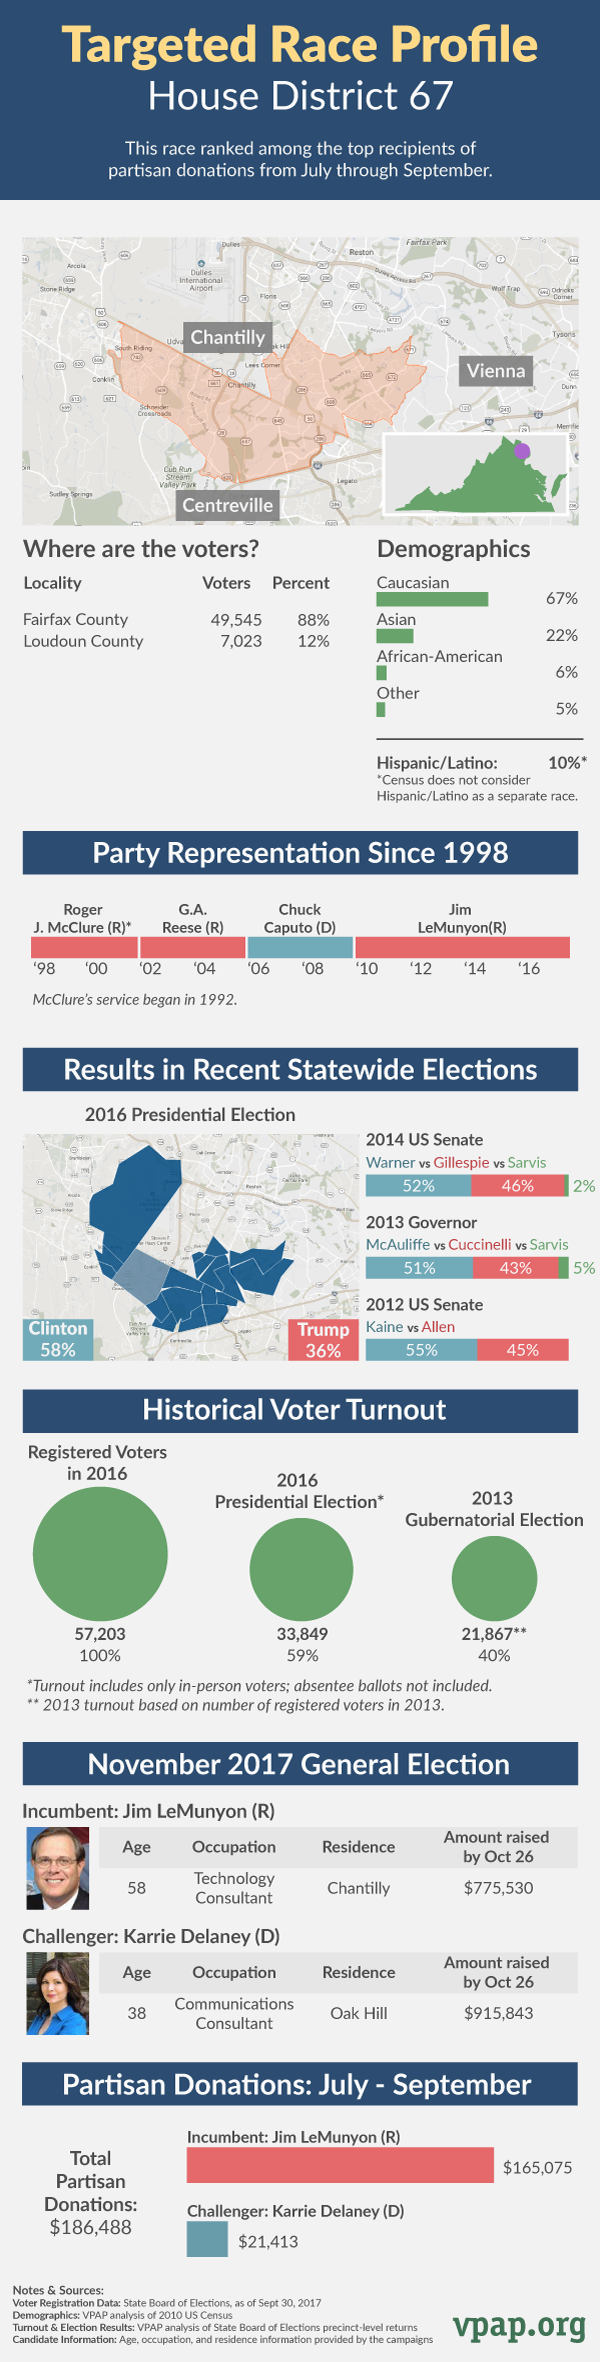 Targeted Race Profile: House District 67